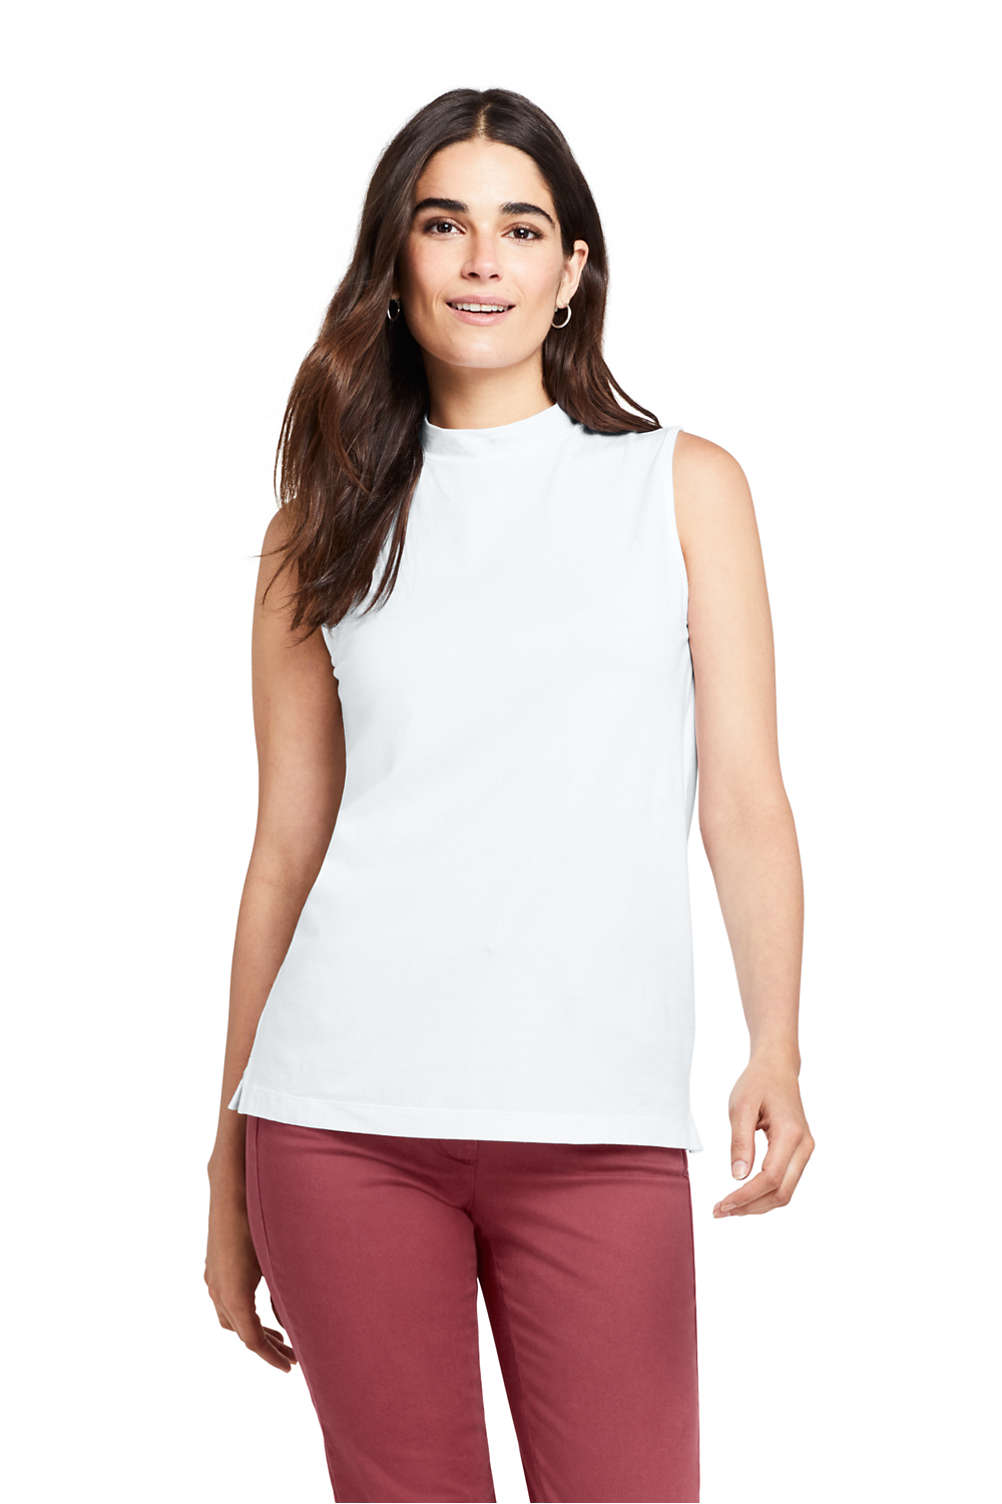 cdf48ad774771 Women's Sleeveless Mock Neck Top from Lands' End